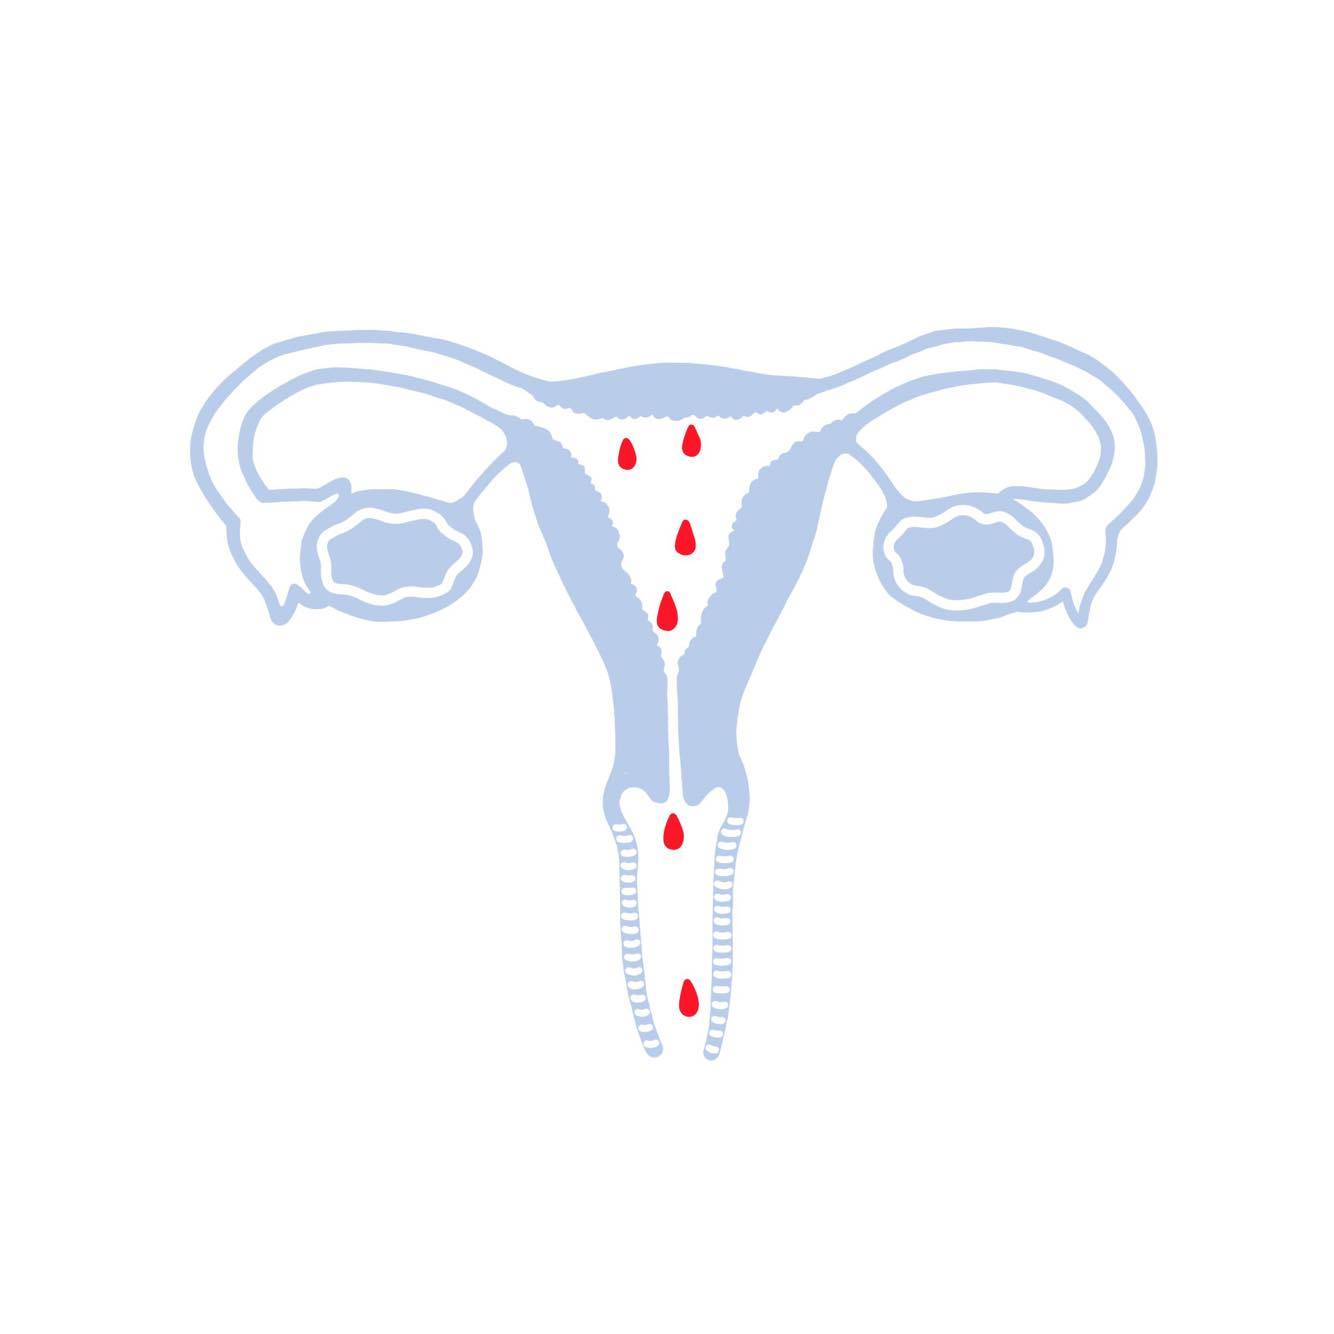 Deconstructing the Menstrual Cycle